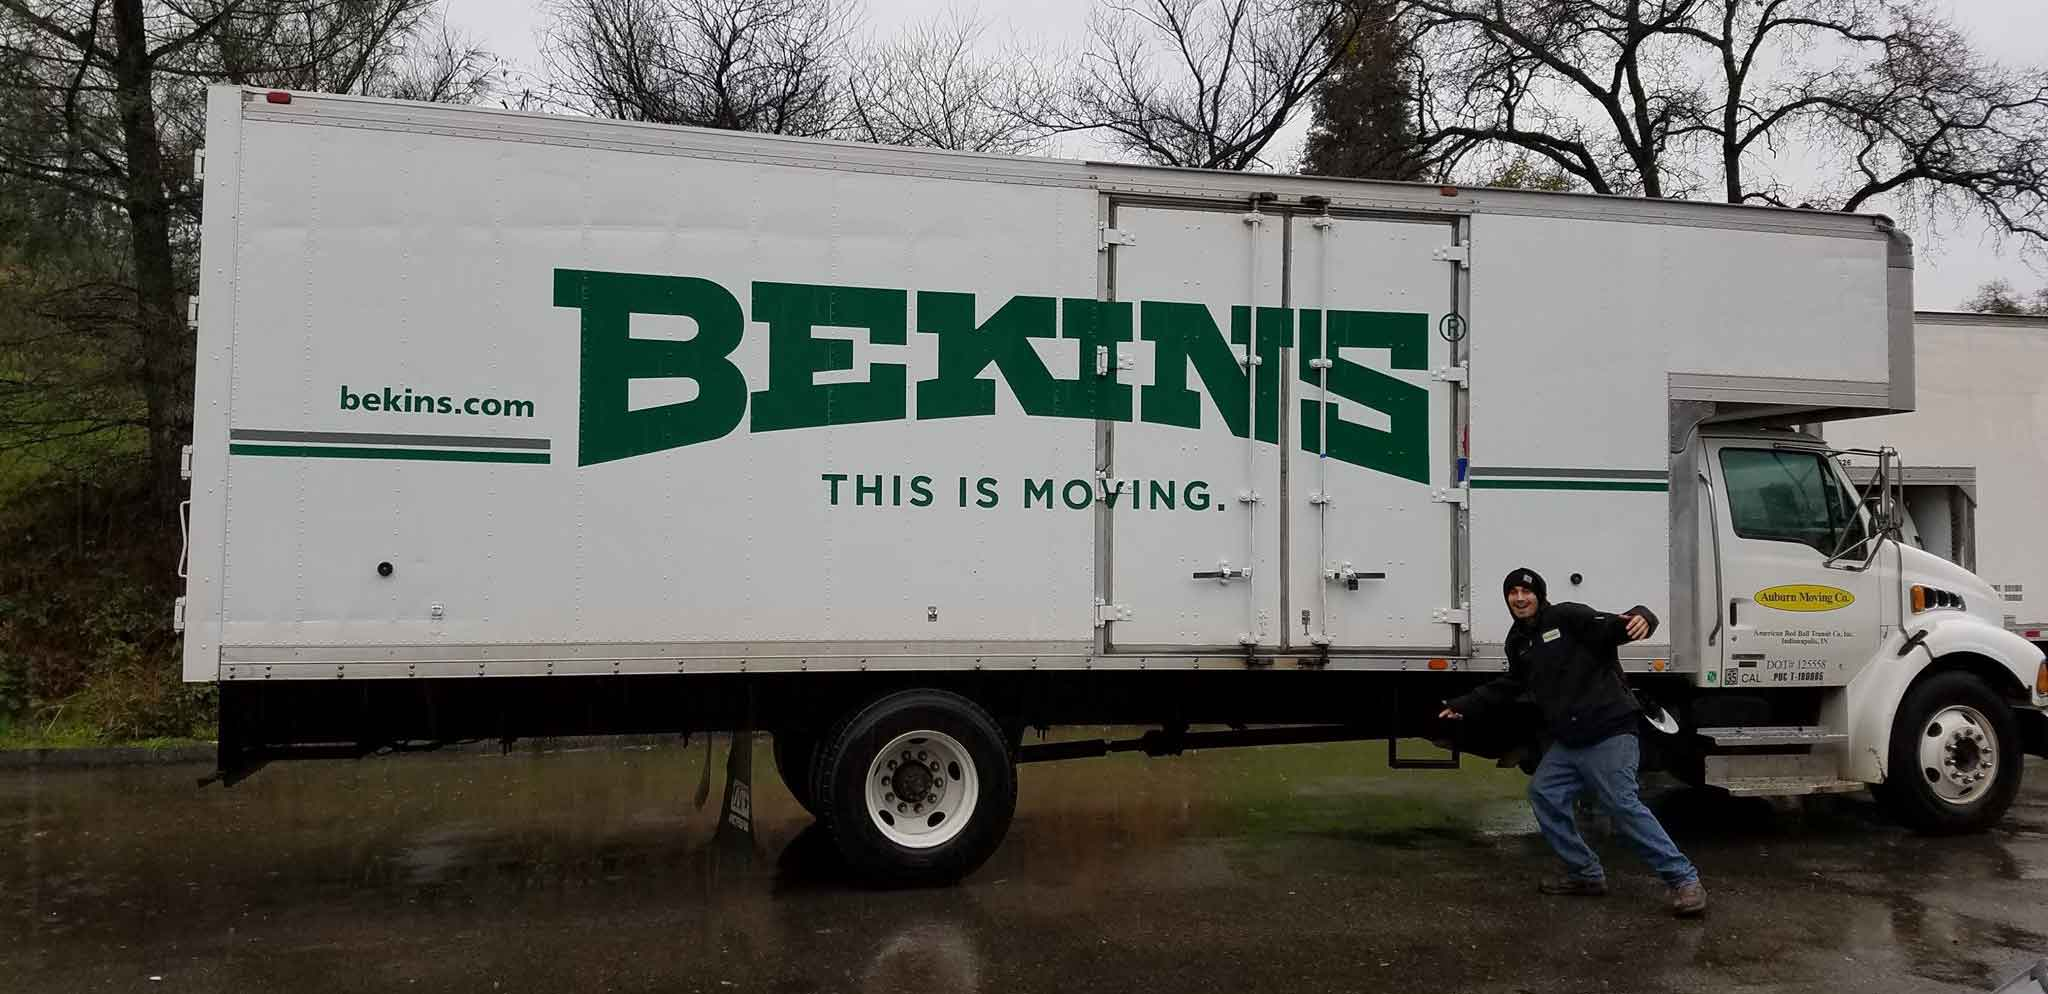 Our Auburn movers are Bekins Van Lines agents